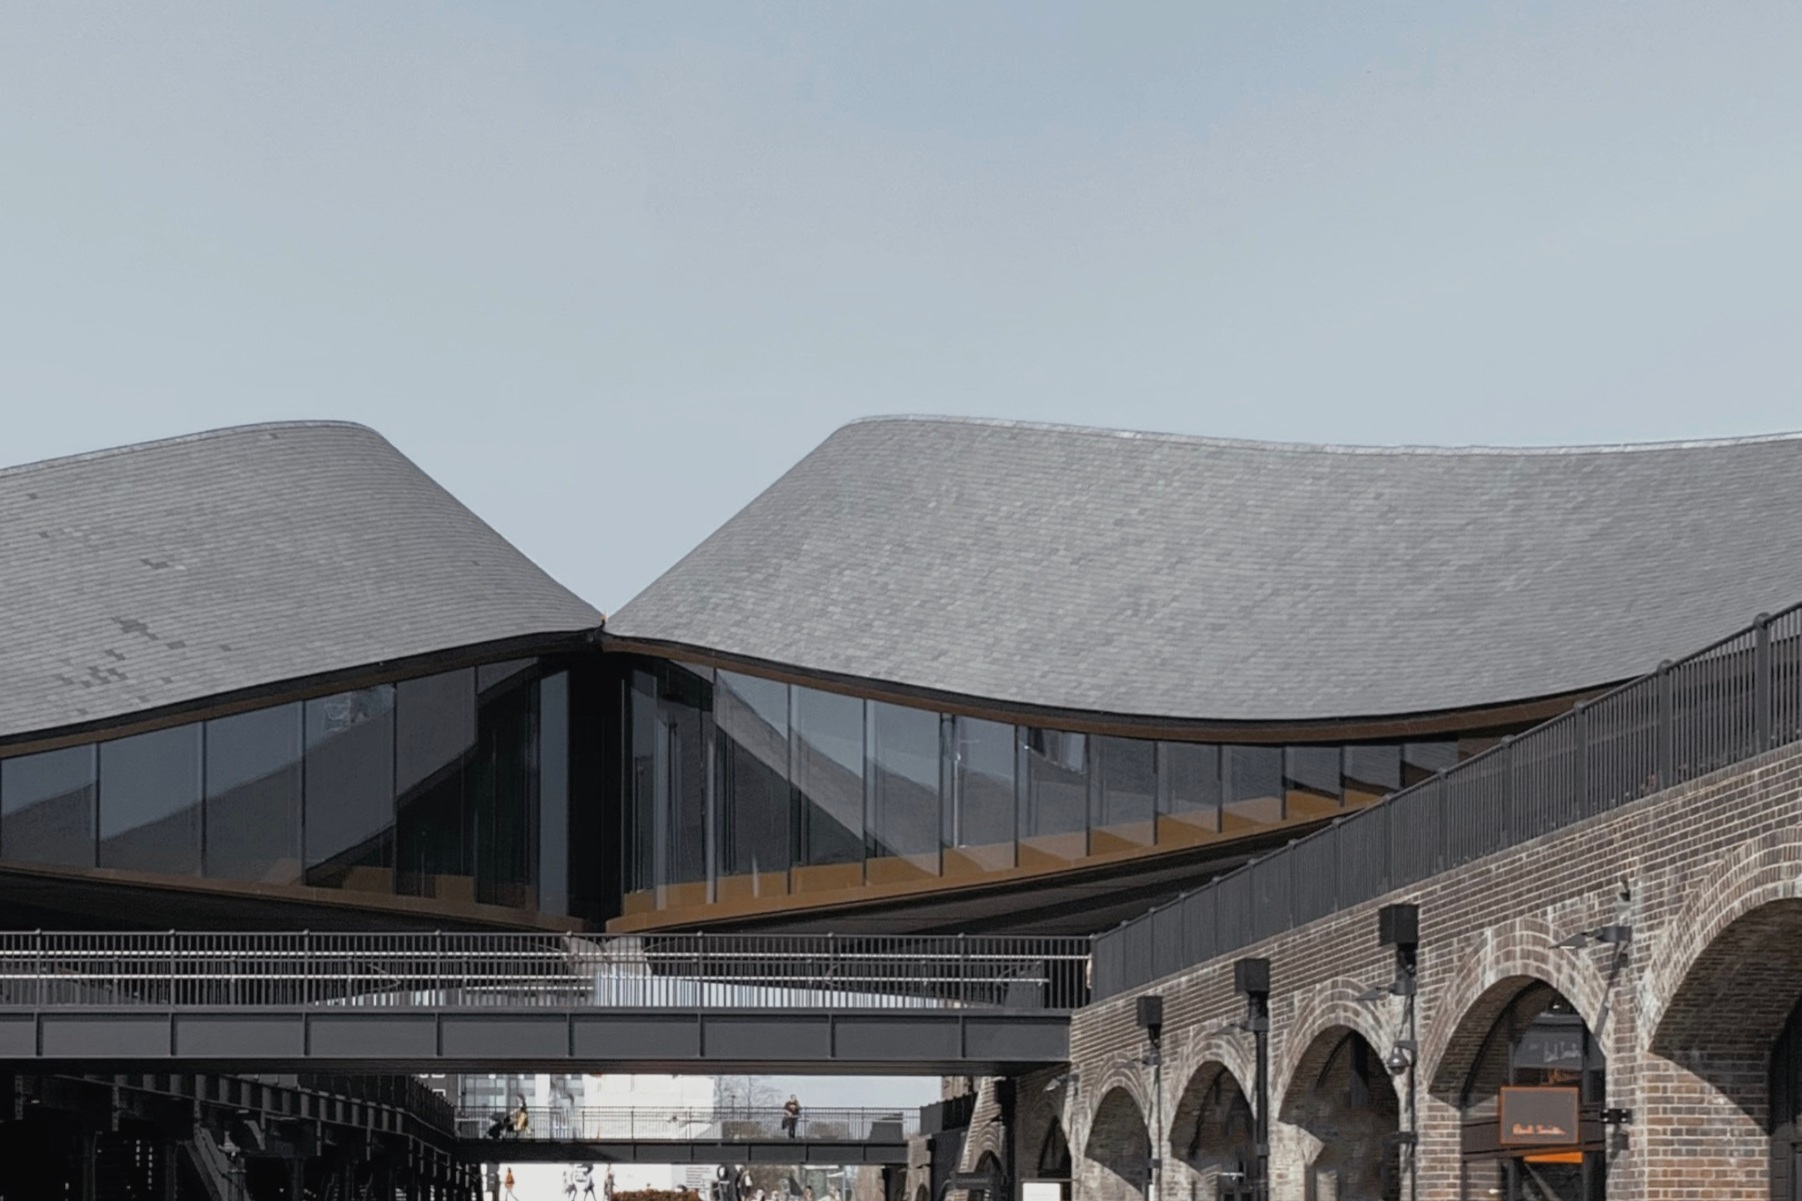 Coal Drops Yard - ArchitectureLondon, United KingdomDescribed as a place to stumble upon something new, to meet with the unexpected, Coal Drops Yard is challenging the trend of faceless, endless, mass supply and demand by redefining what 'consumption' means. Its clever and well considered design makes for a great place where art, commerce and culture come together. Once the marshalling yards of the industrial revolution, Coal Drops Yard offers an experience that's out of the ordinary, that goes beyond being a place to buy.